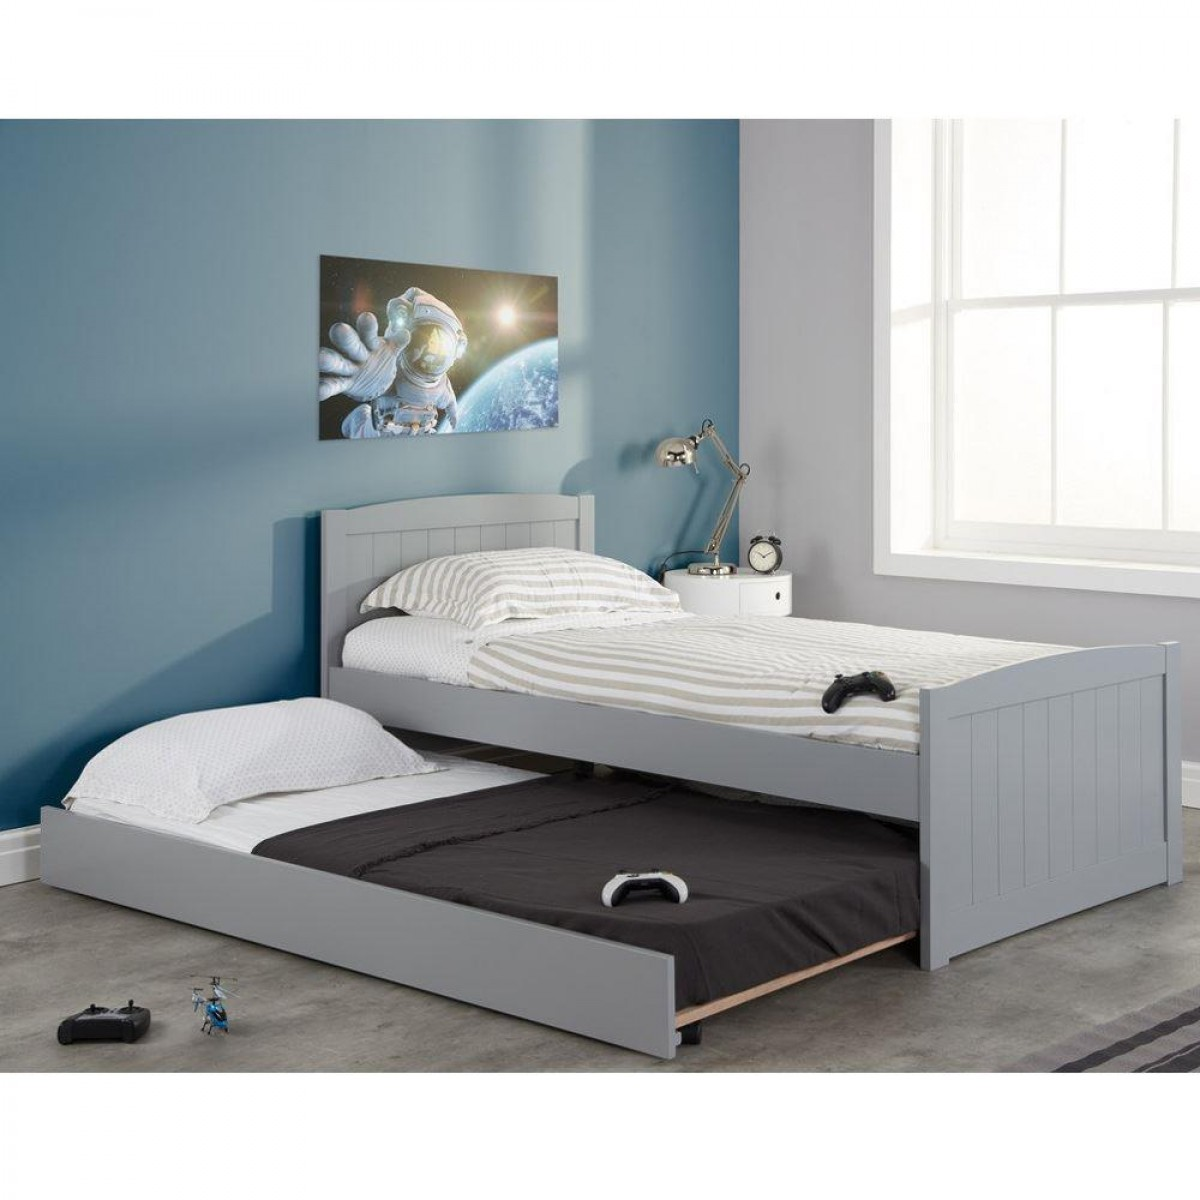 new product 71fe3 7d41f Beckton Grey Wooden Bed and Trundle Guest Bed